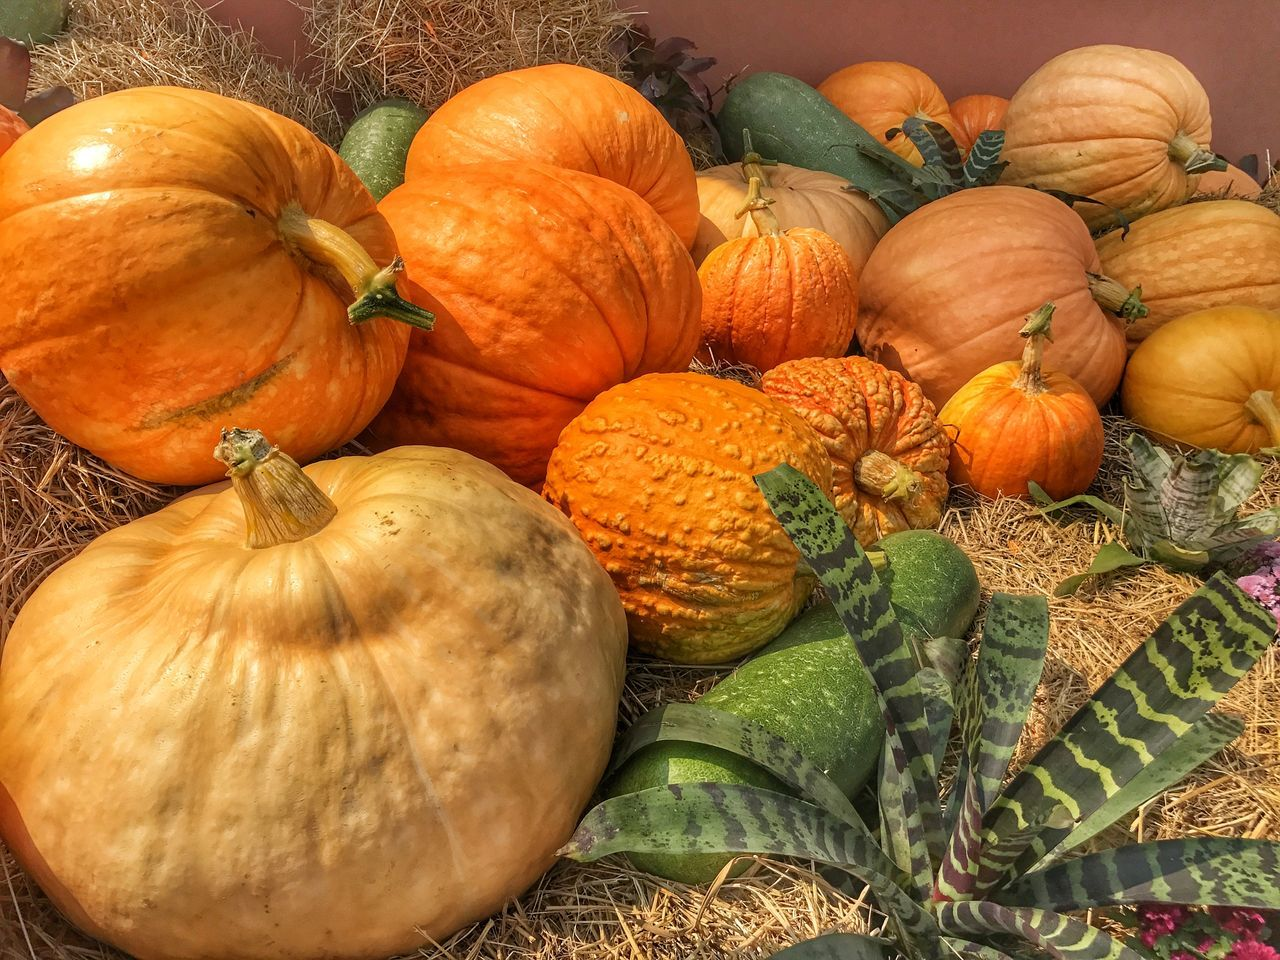 Big Pumpkins Vegetable Fruit Healthy Eating Nature Pumkin Freshness Orange Color Outdoors Close-up Day